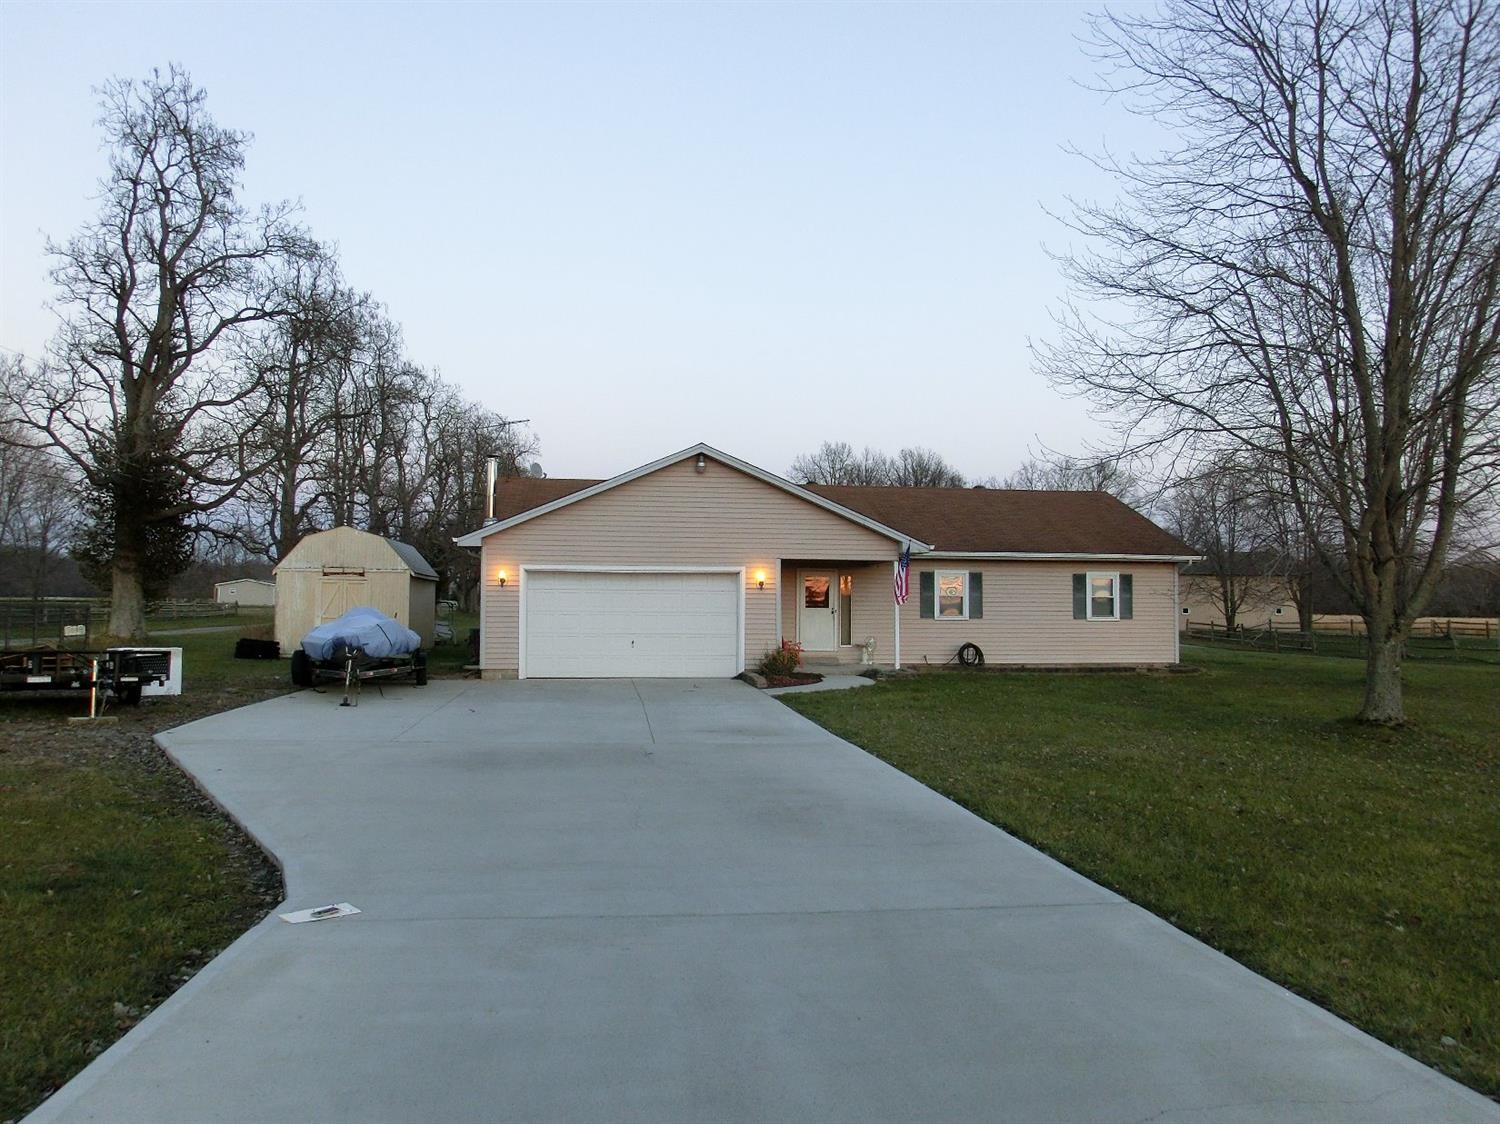 6210 Newtonsville Rd Wayne Twp. (Clermont Co.), OH